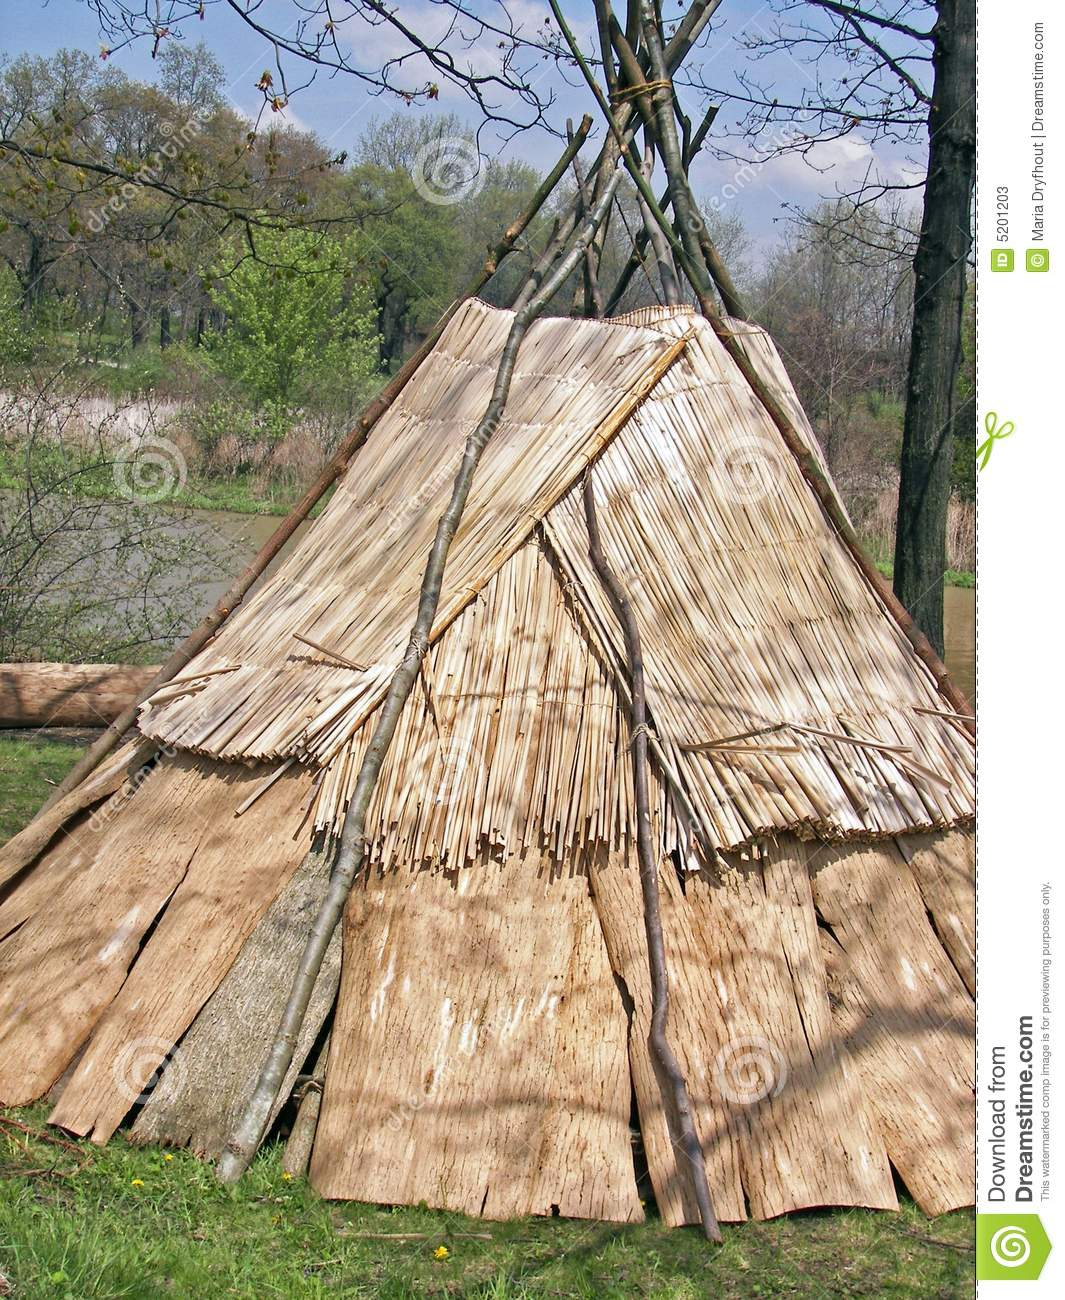 tepee indien photos stock image 5201203. Black Bedroom Furniture Sets. Home Design Ideas